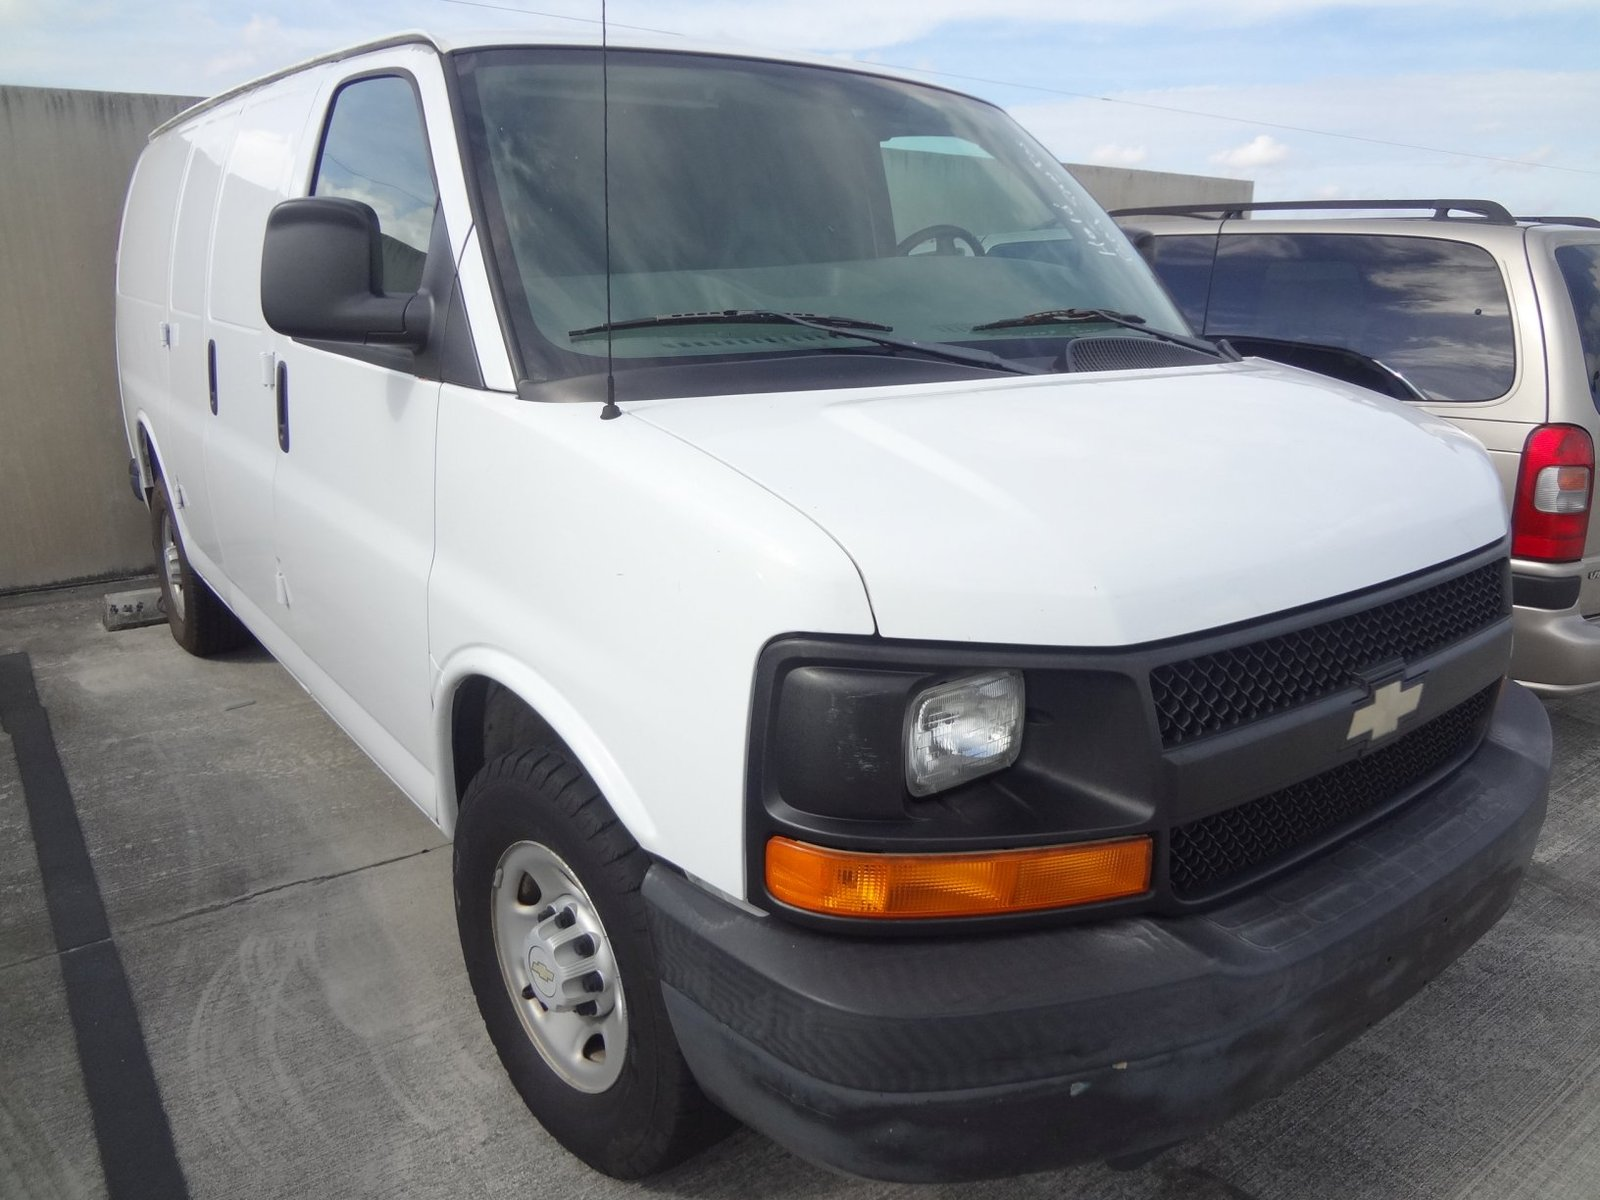 Picture of 2005 Chevrolet Express G1500 Passenger Van